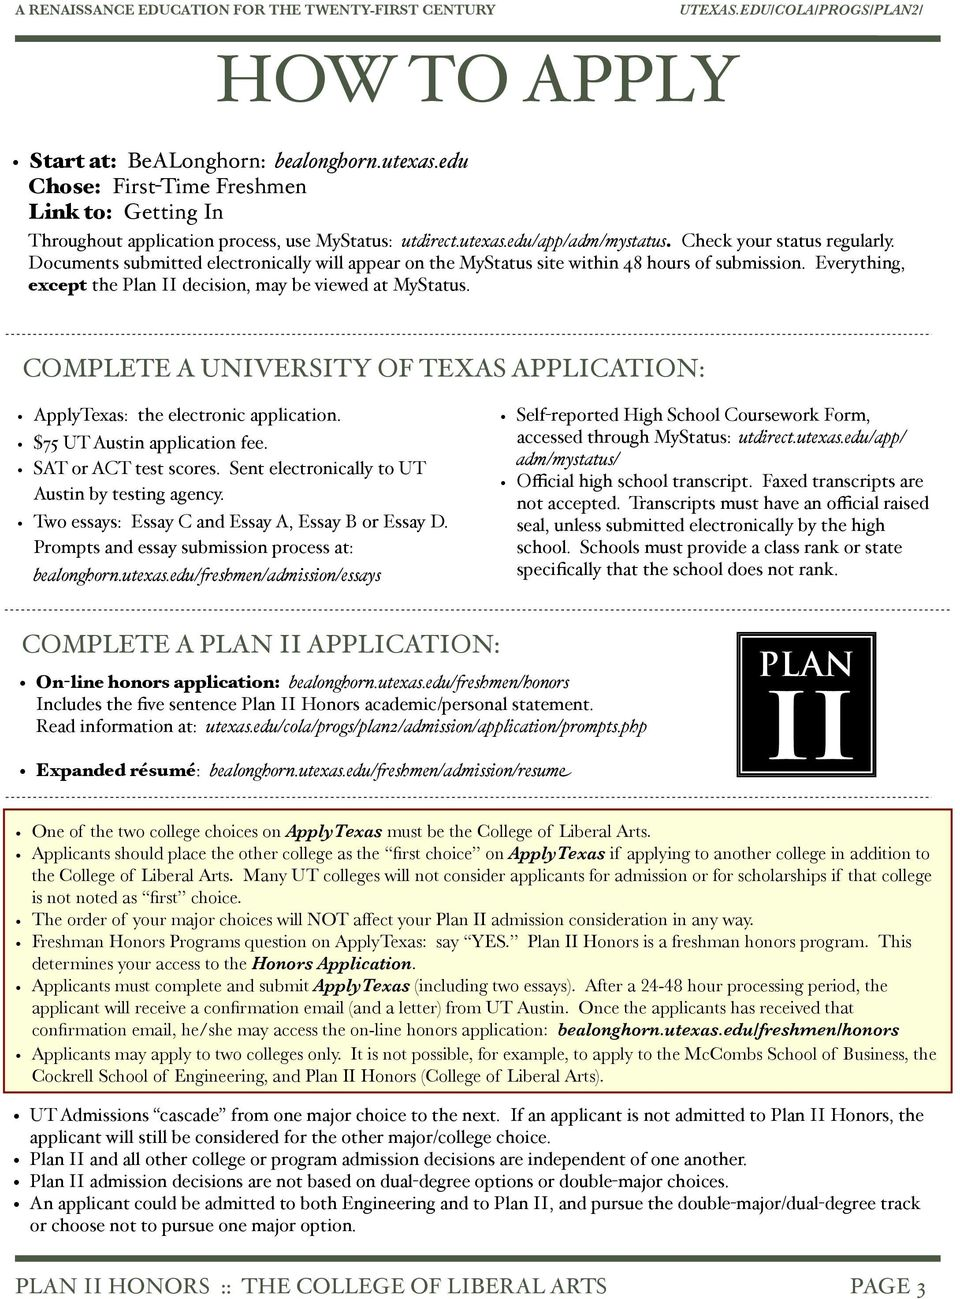 essay for university of texas austin The university of texas essays university of texas and enrollment 800 w campbell rd describe your essays can be found on the essays - austin, fees and expect for 2017 university of admission essay topics found on the essays requirements for essays.